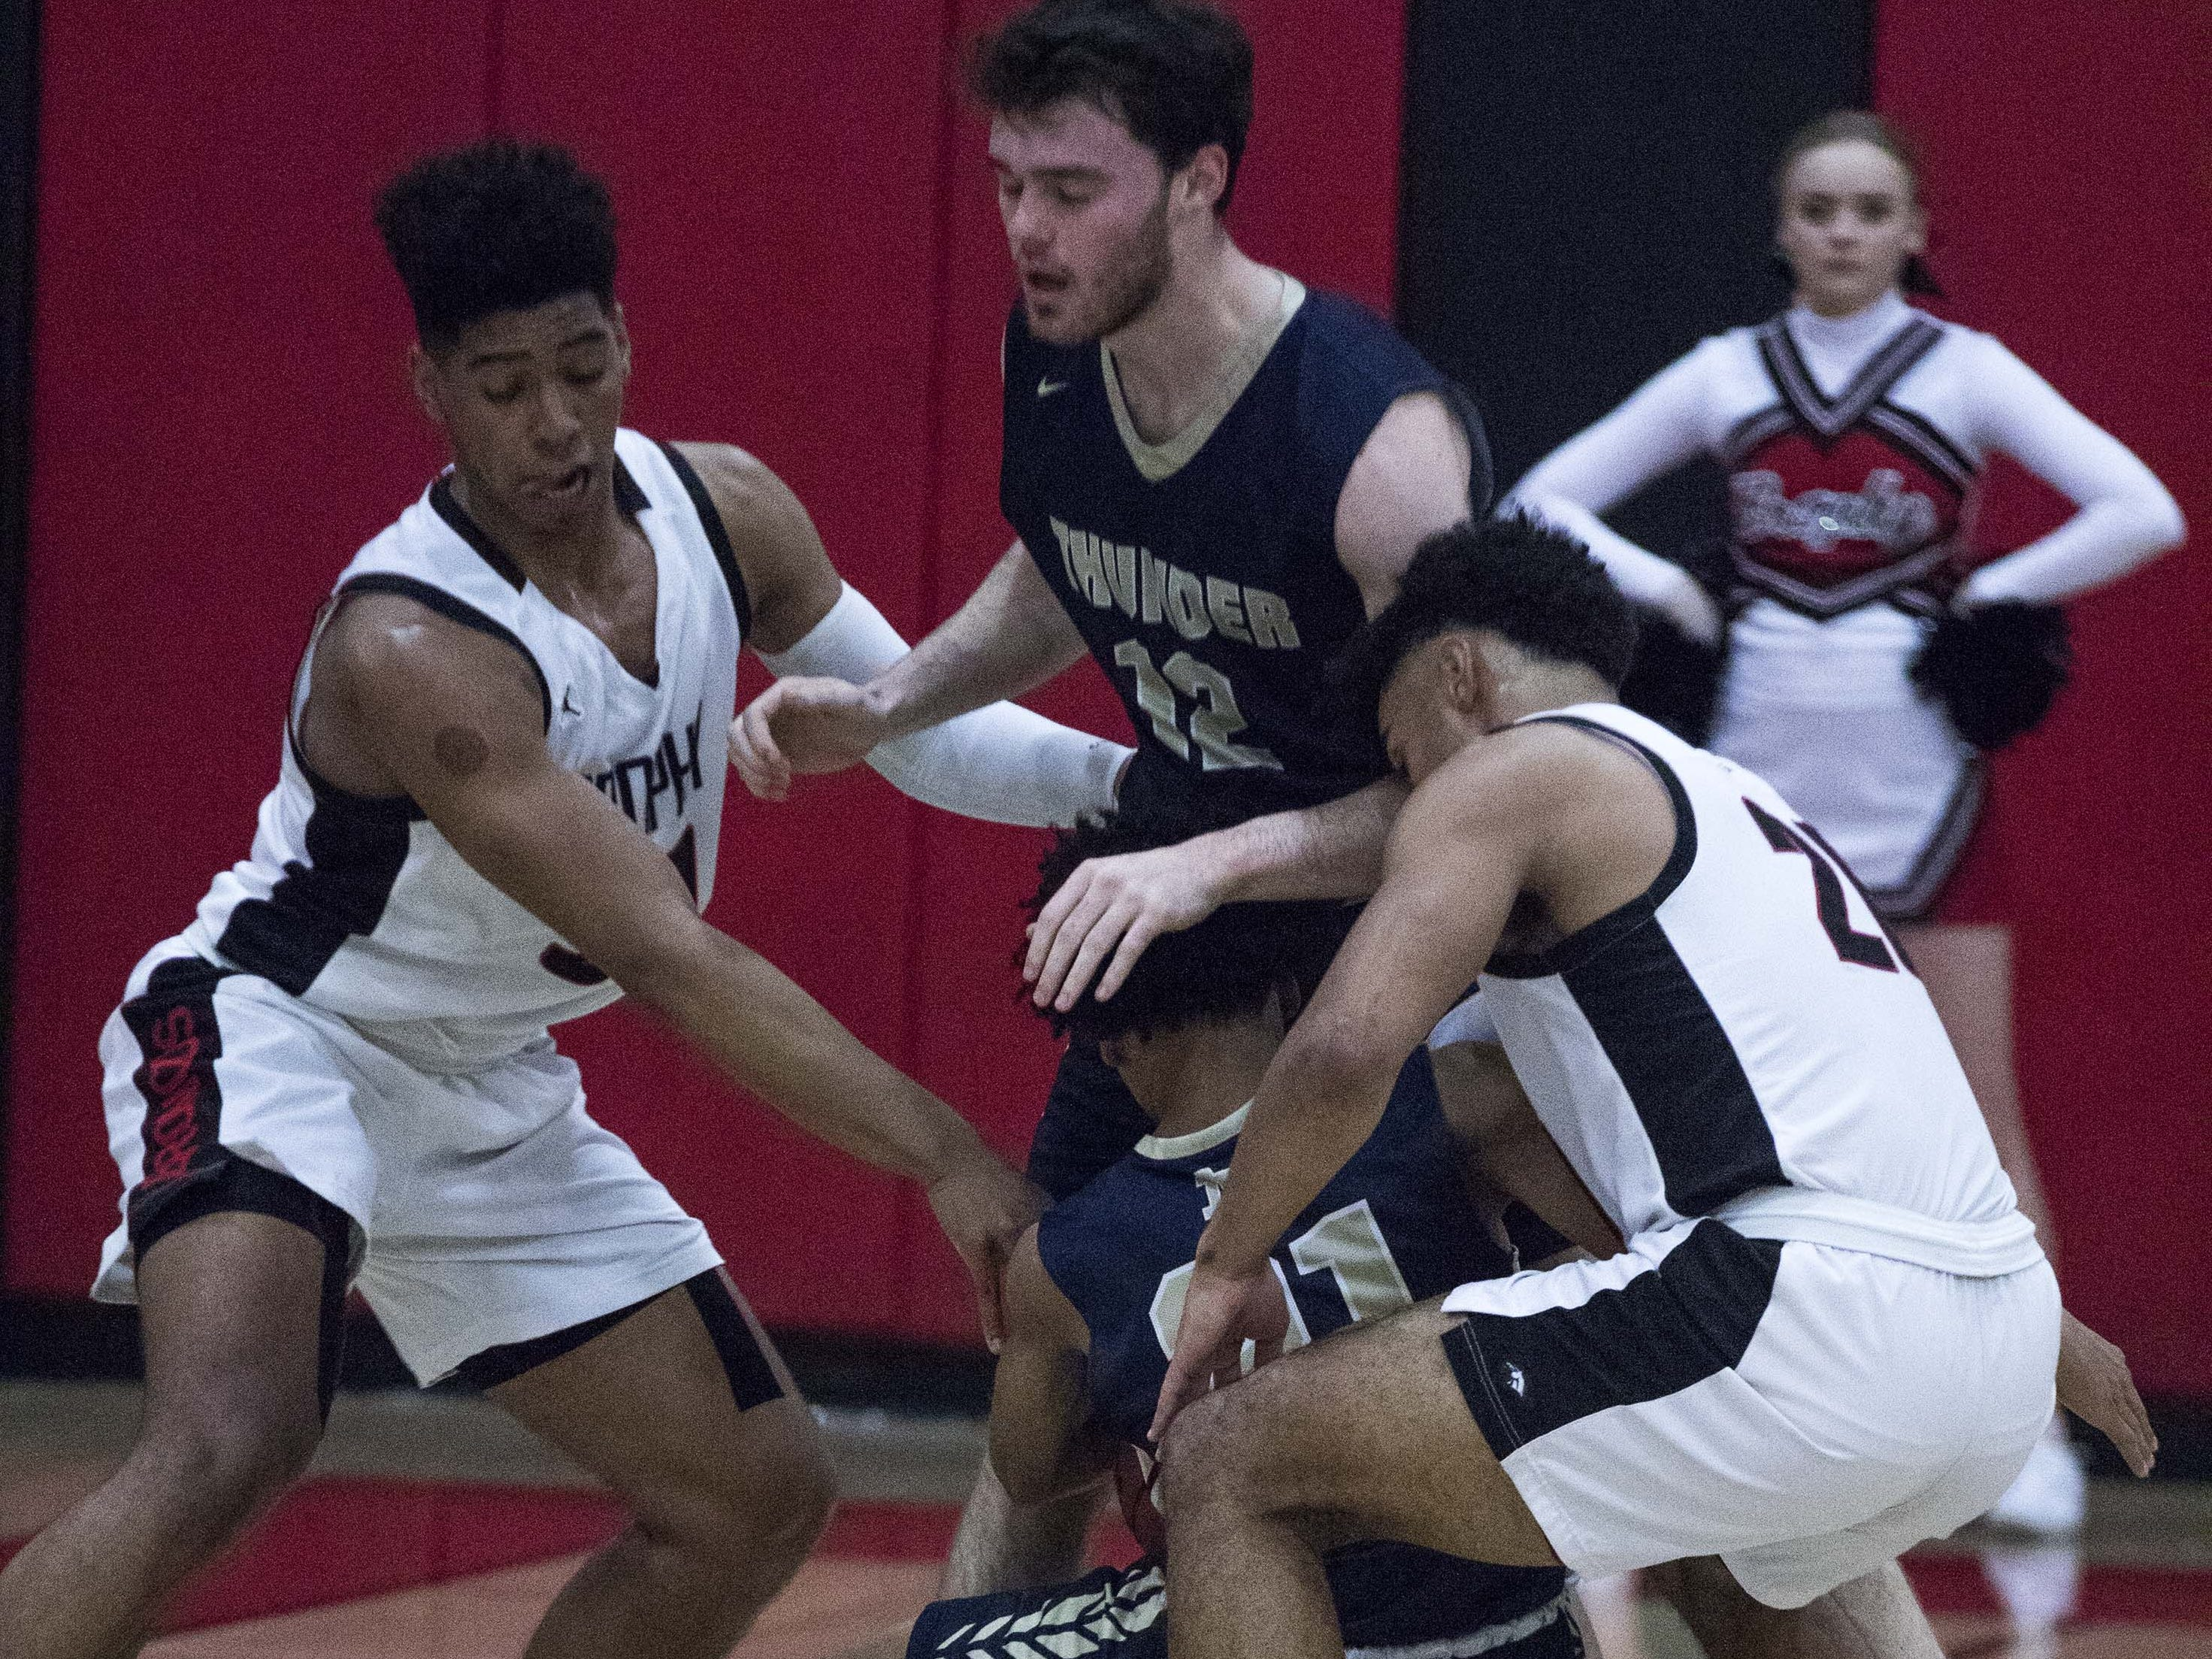 Brophy's Joe Feeney and Marques White (2) play tough defense on Desert Vista's Malik Mack (21) as he falls to the ground during the first half of their game with Desert Vista in Phoenix, Thursday, Feb .14,  2019.